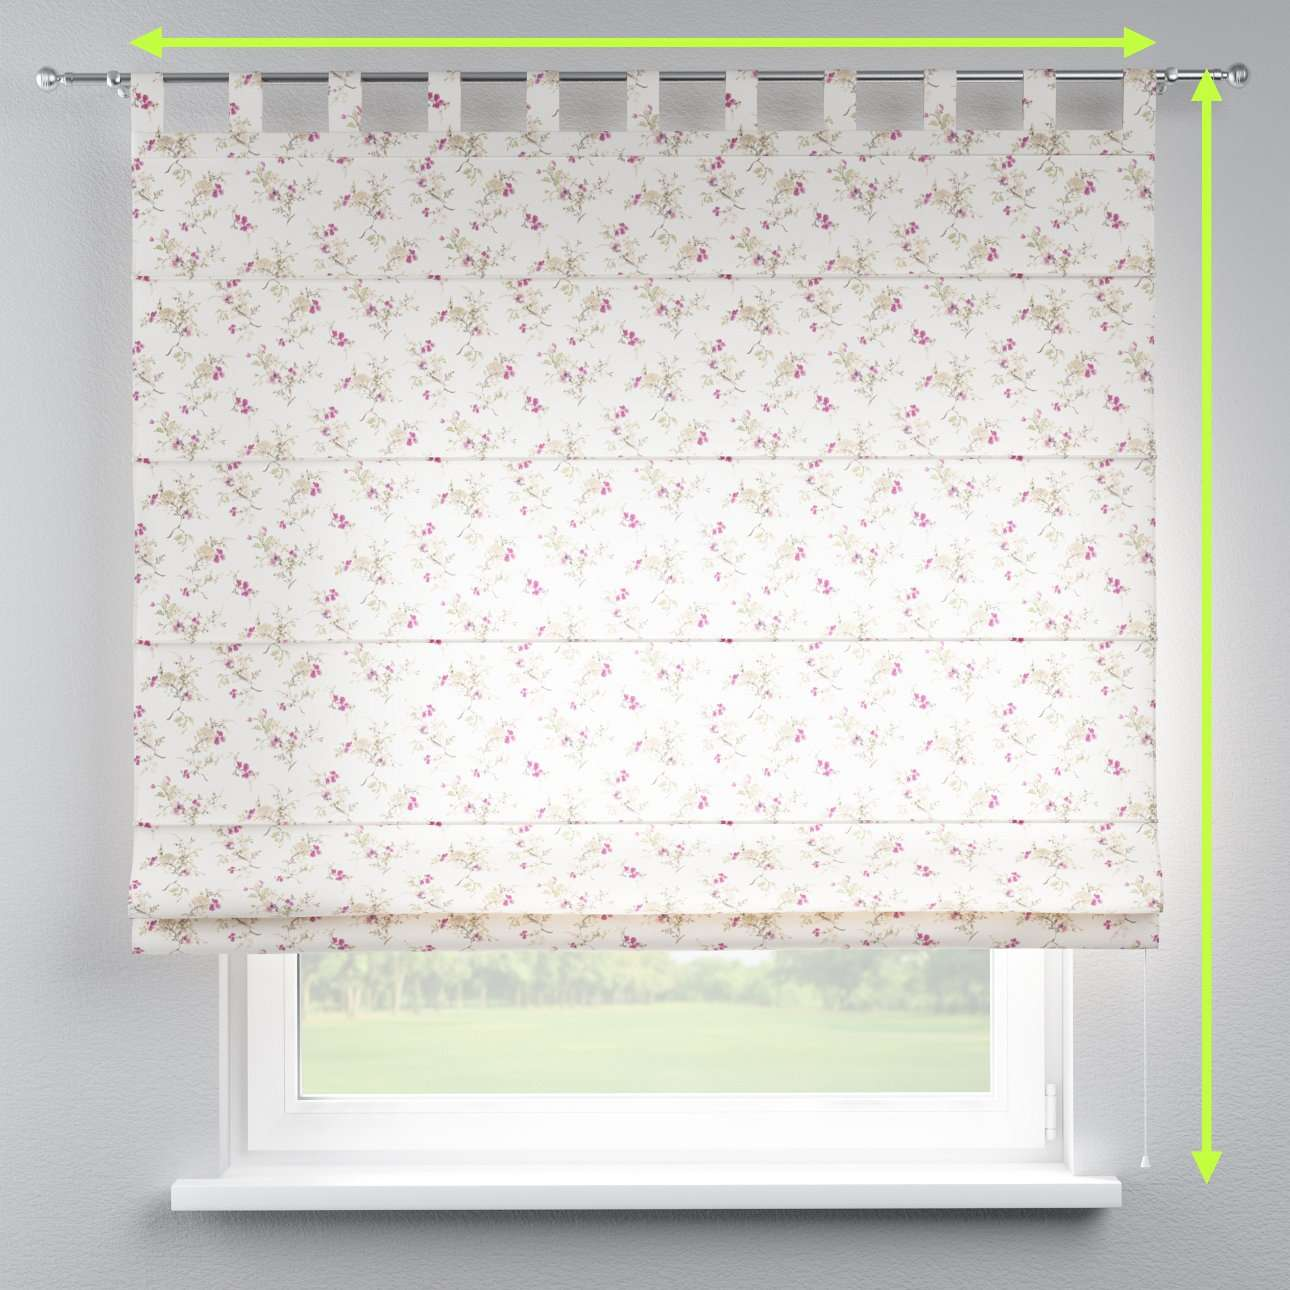 Verona tab top roman blind in collection Mirella, fabric: 141-13